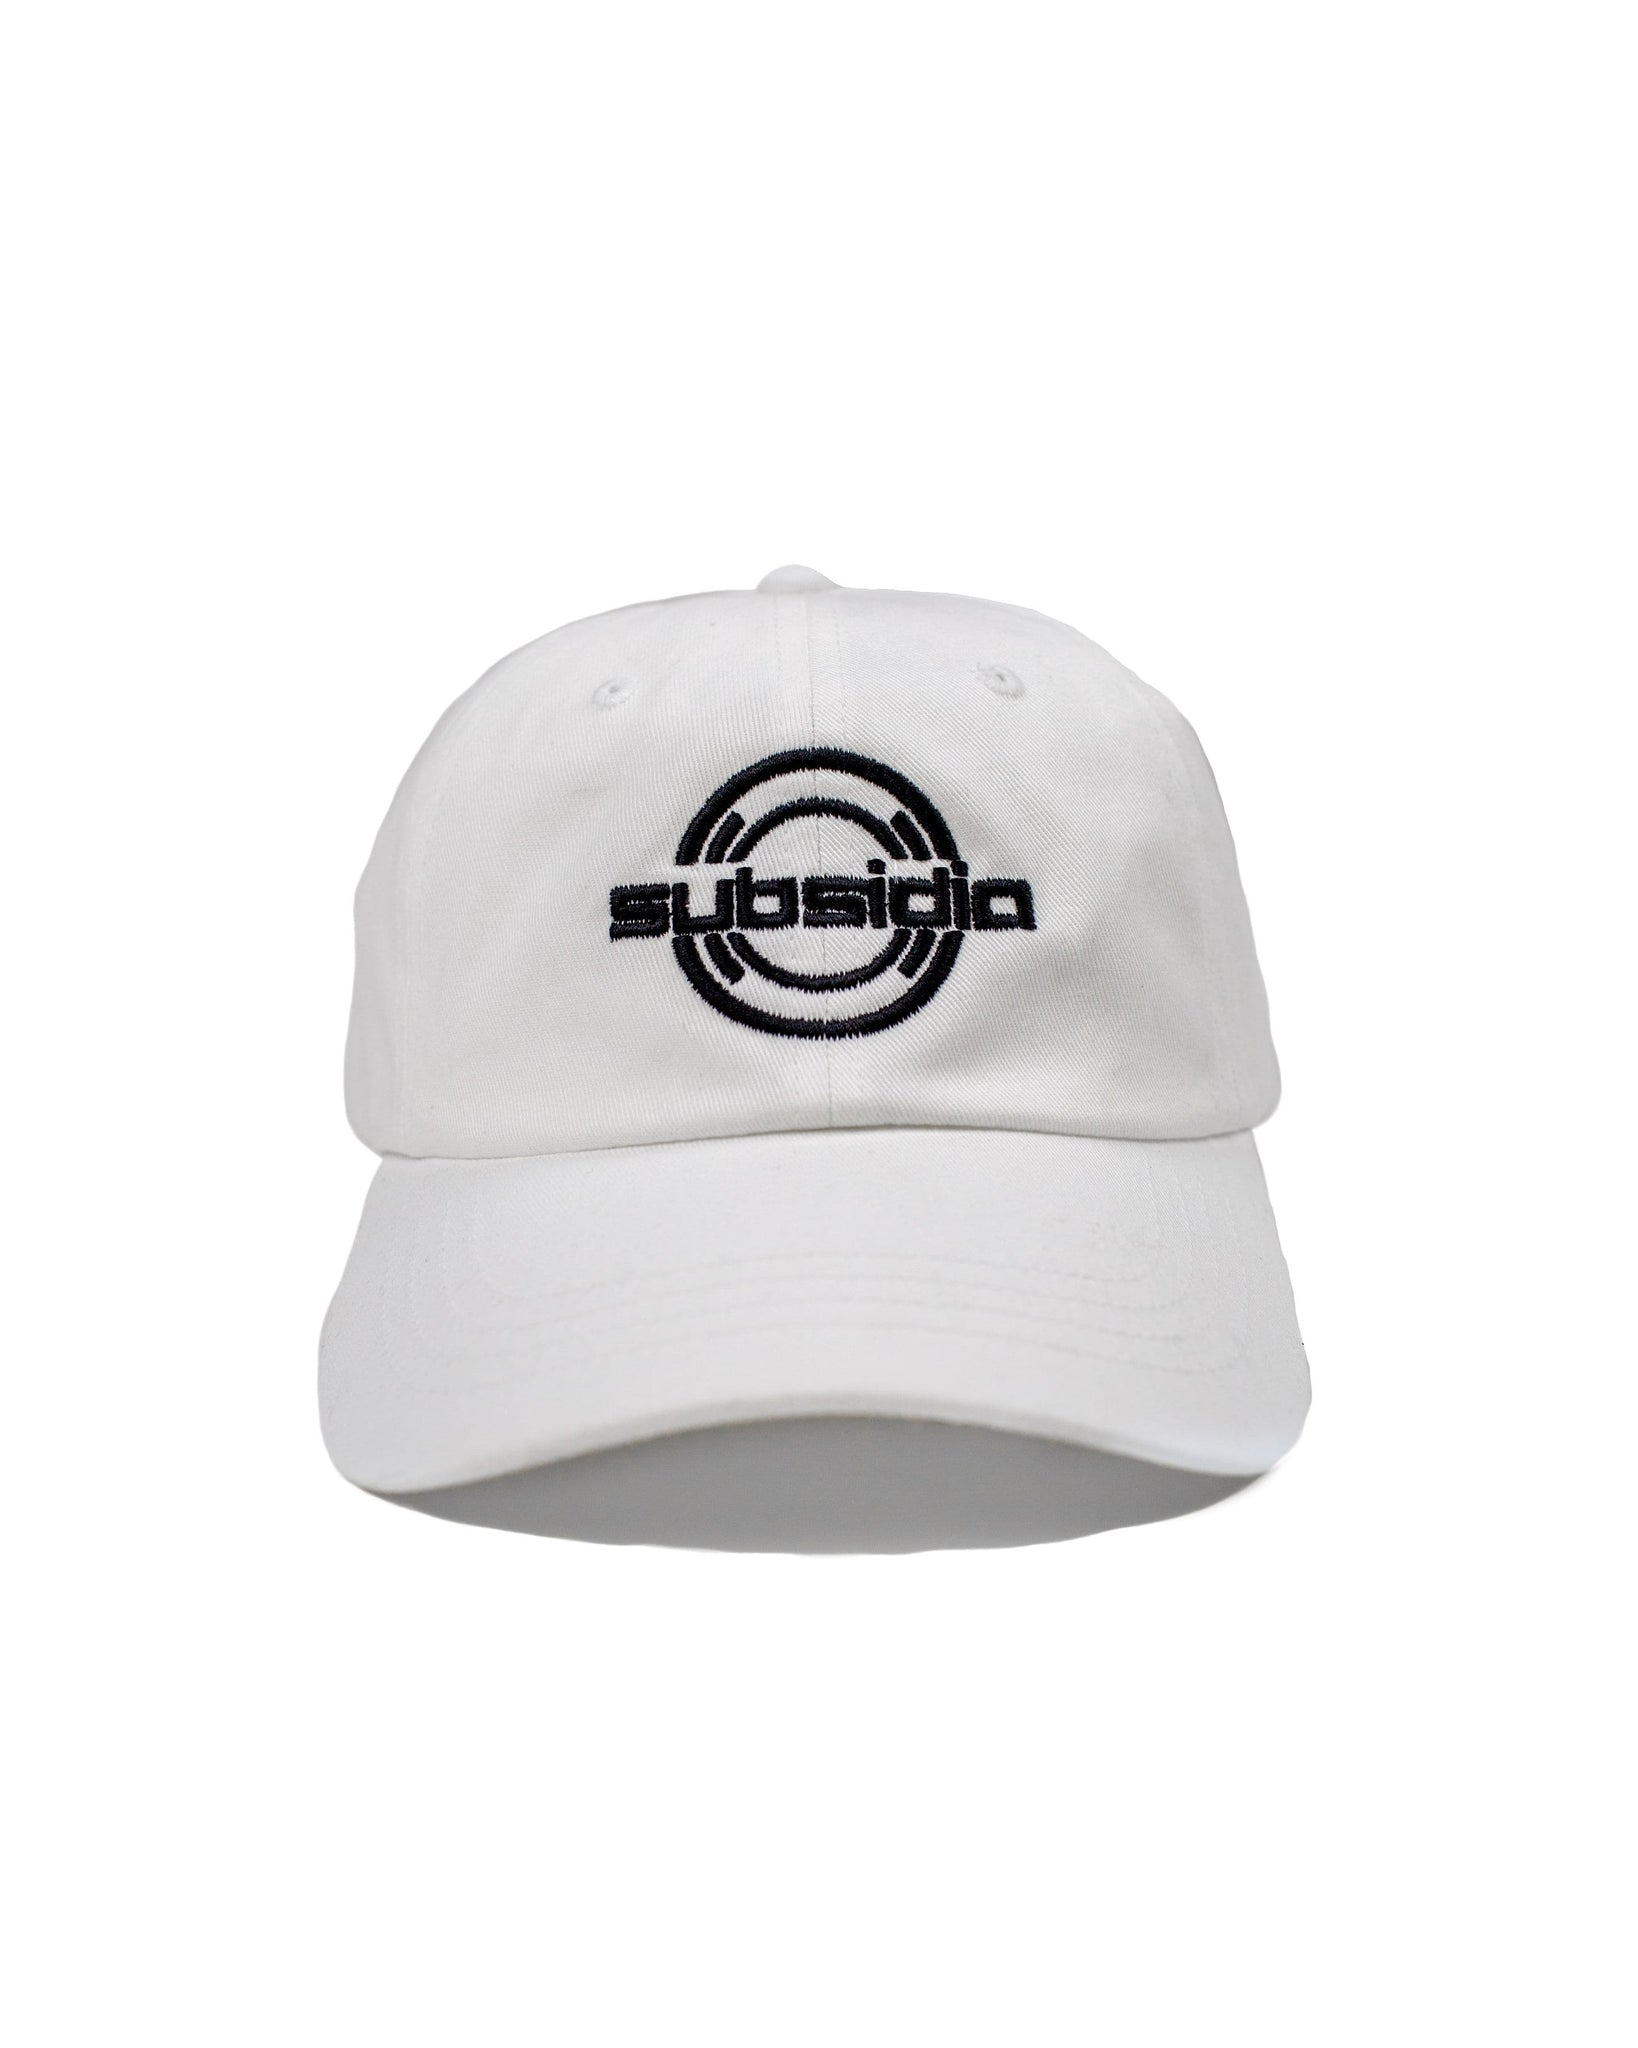 'Subsidia' Dad Hat - White/Black